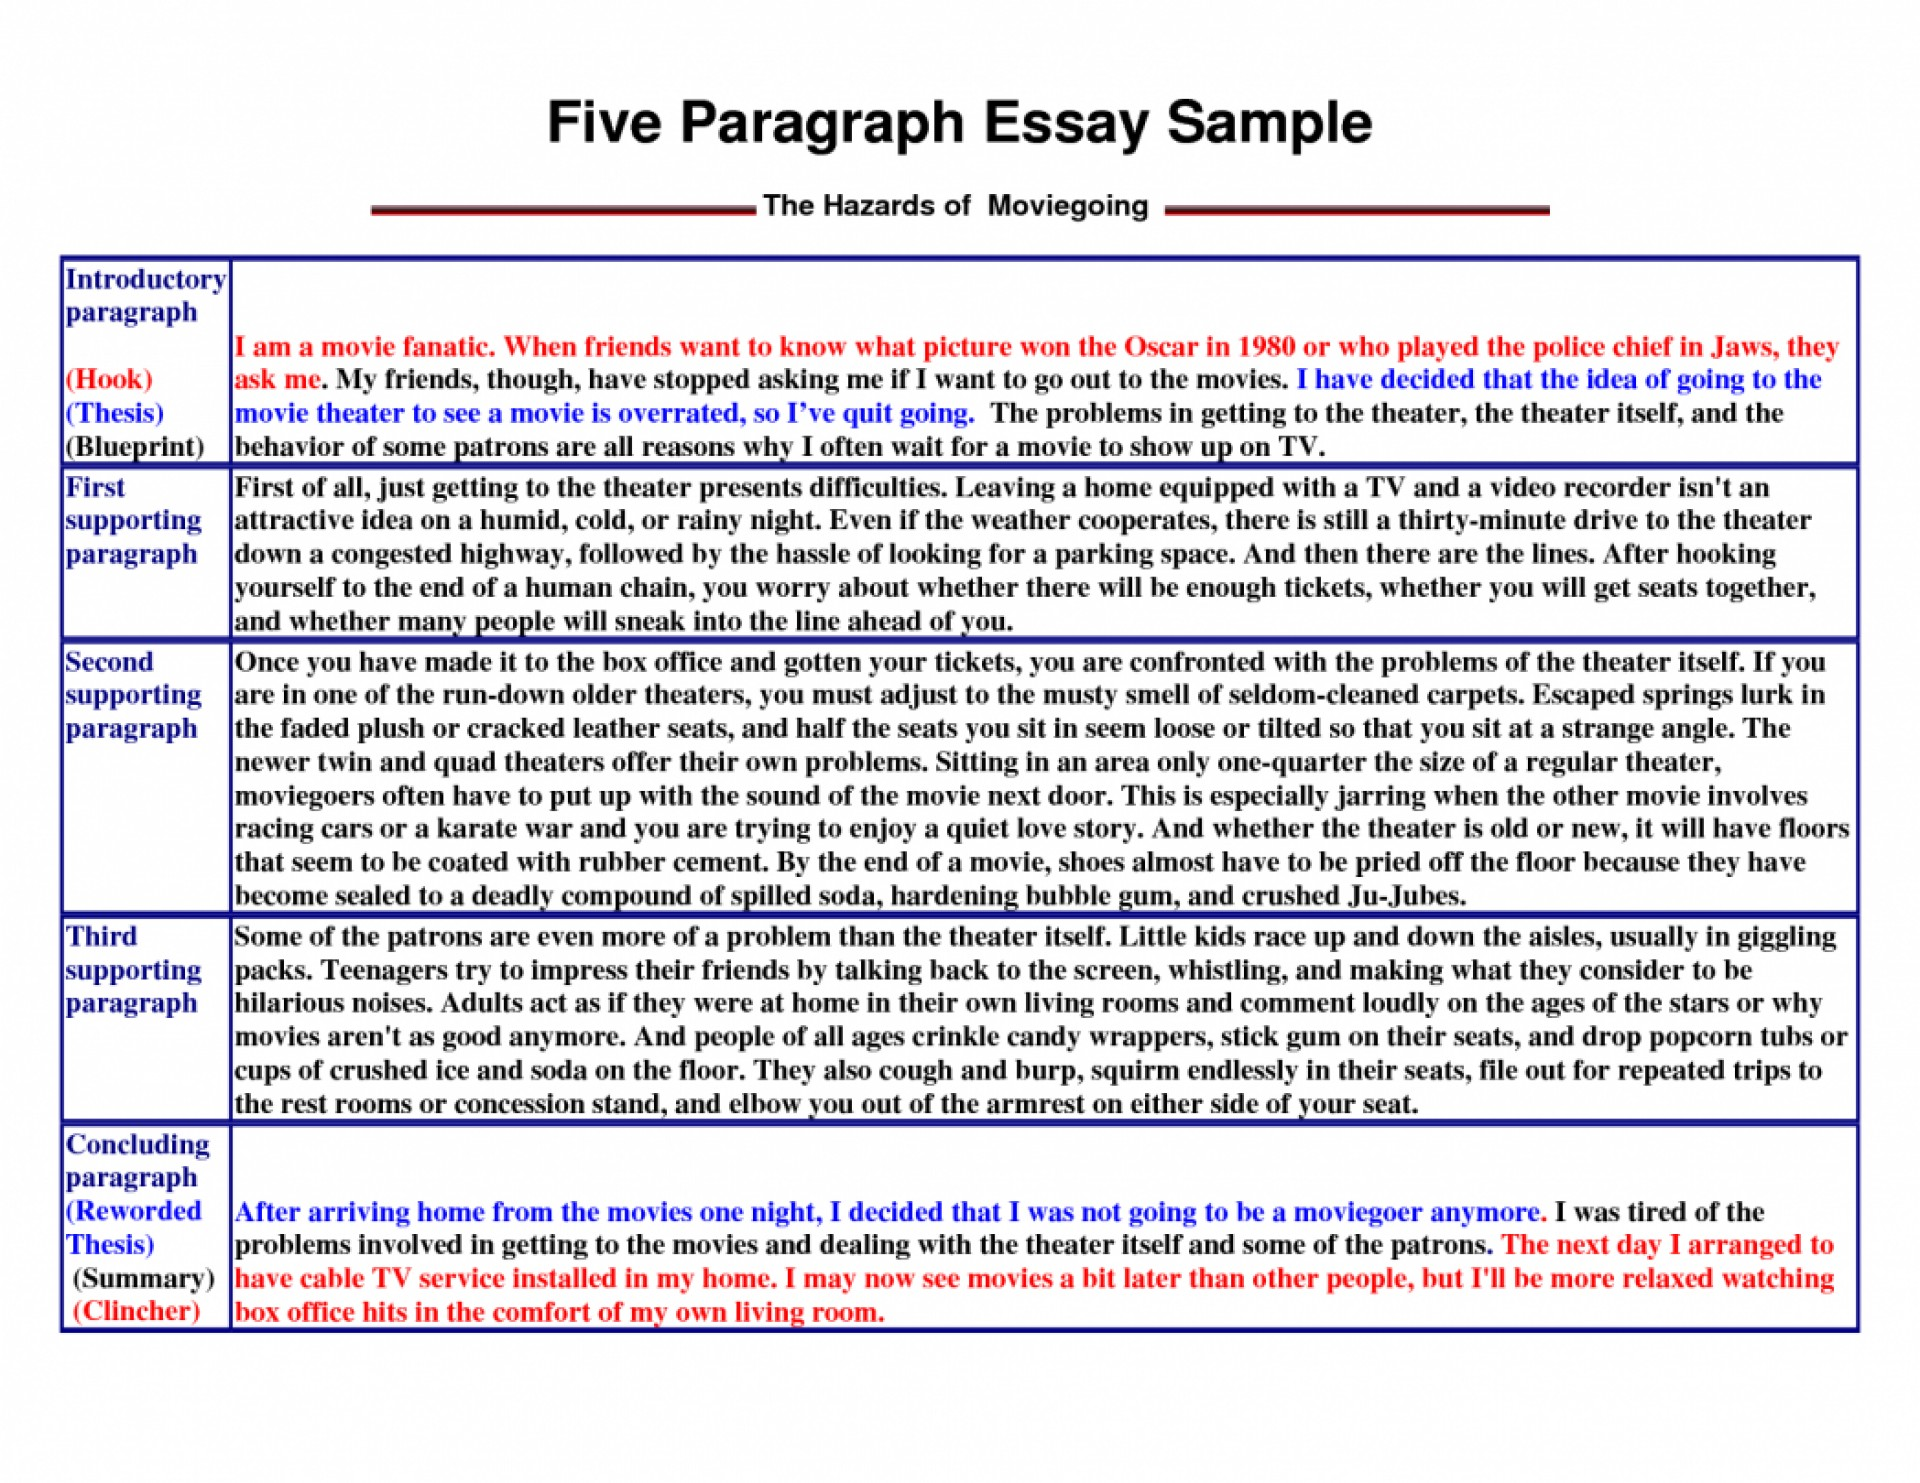 008 Essay Example How To Write An Intro Paragraph For Introductory Goal Blockety Co Good Introduction About Yourself Do You English Pdf Expository Awful Analytical Start 1920